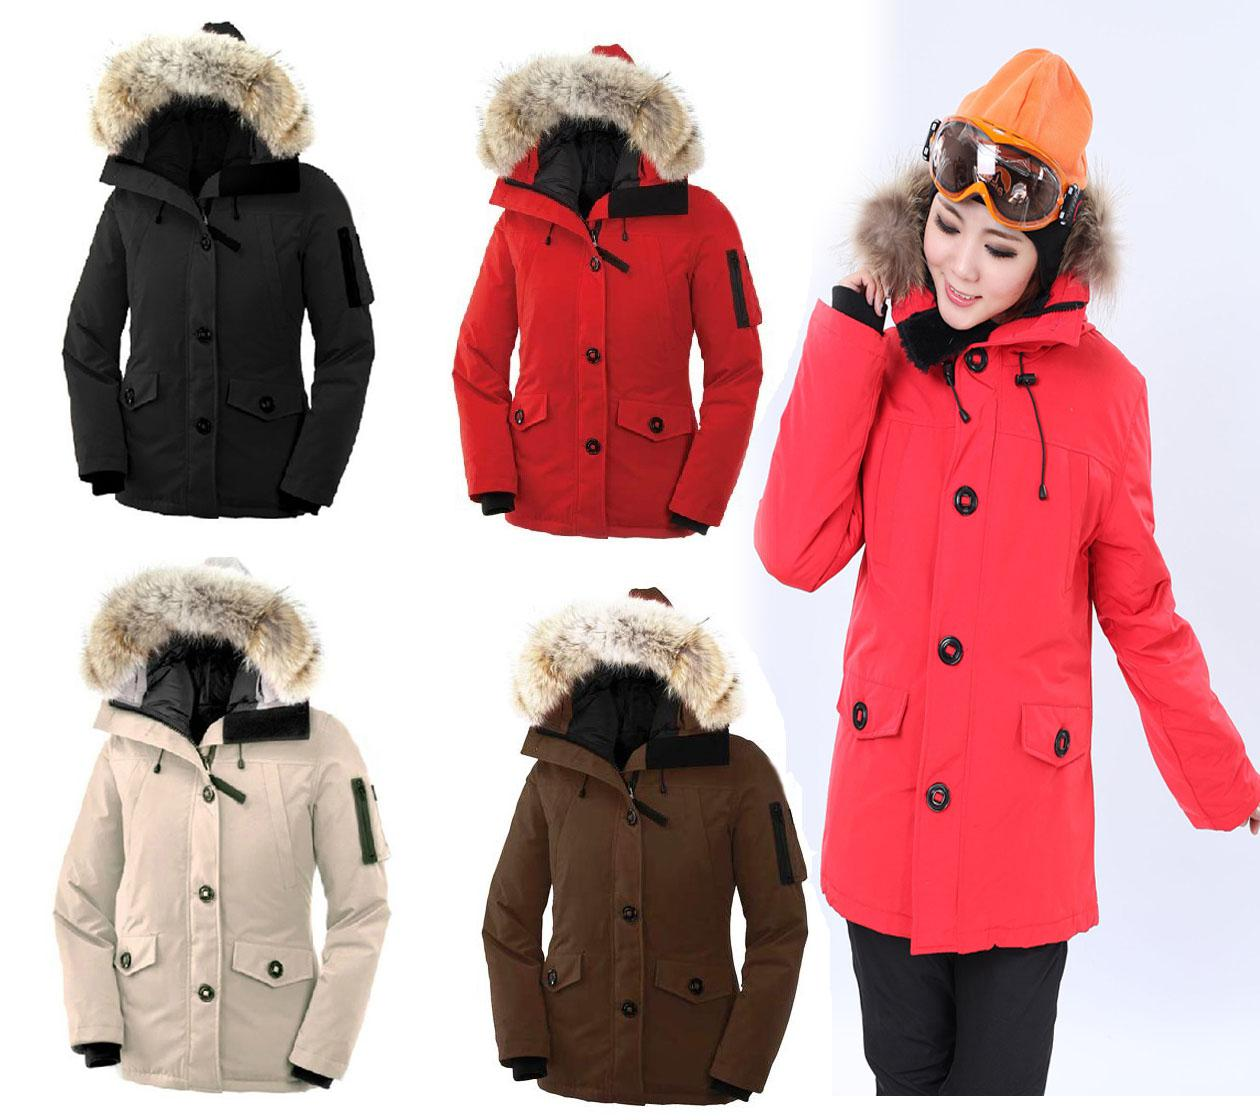 Hot Selling Classic Womens Monte Bellos Parka Down Jackets Coats ...